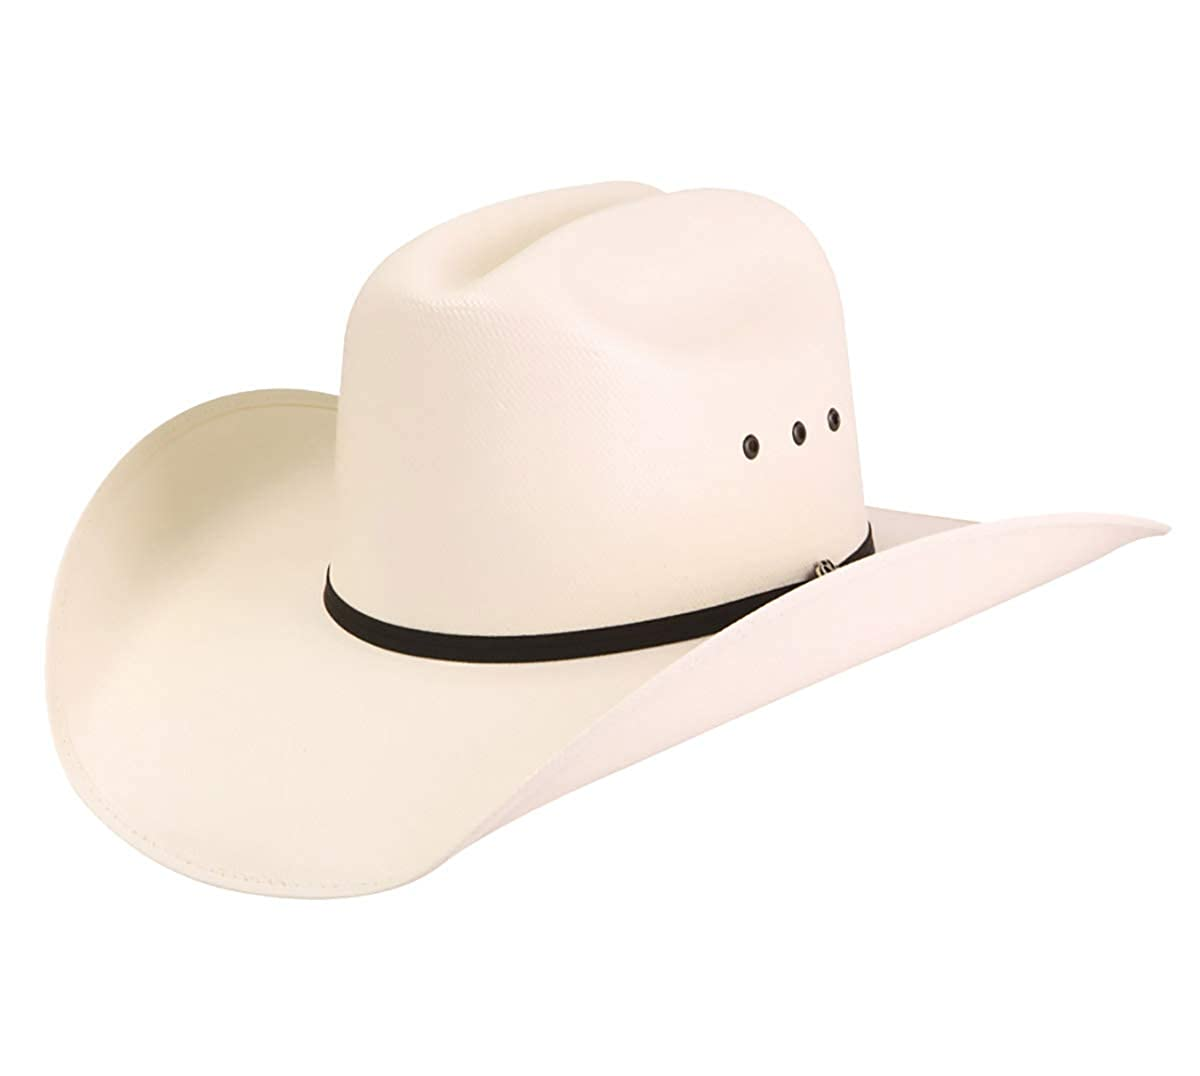 El general mens western hat sombrero el cartel color ivory at amazon mens  clothing store jpg f62308b382b